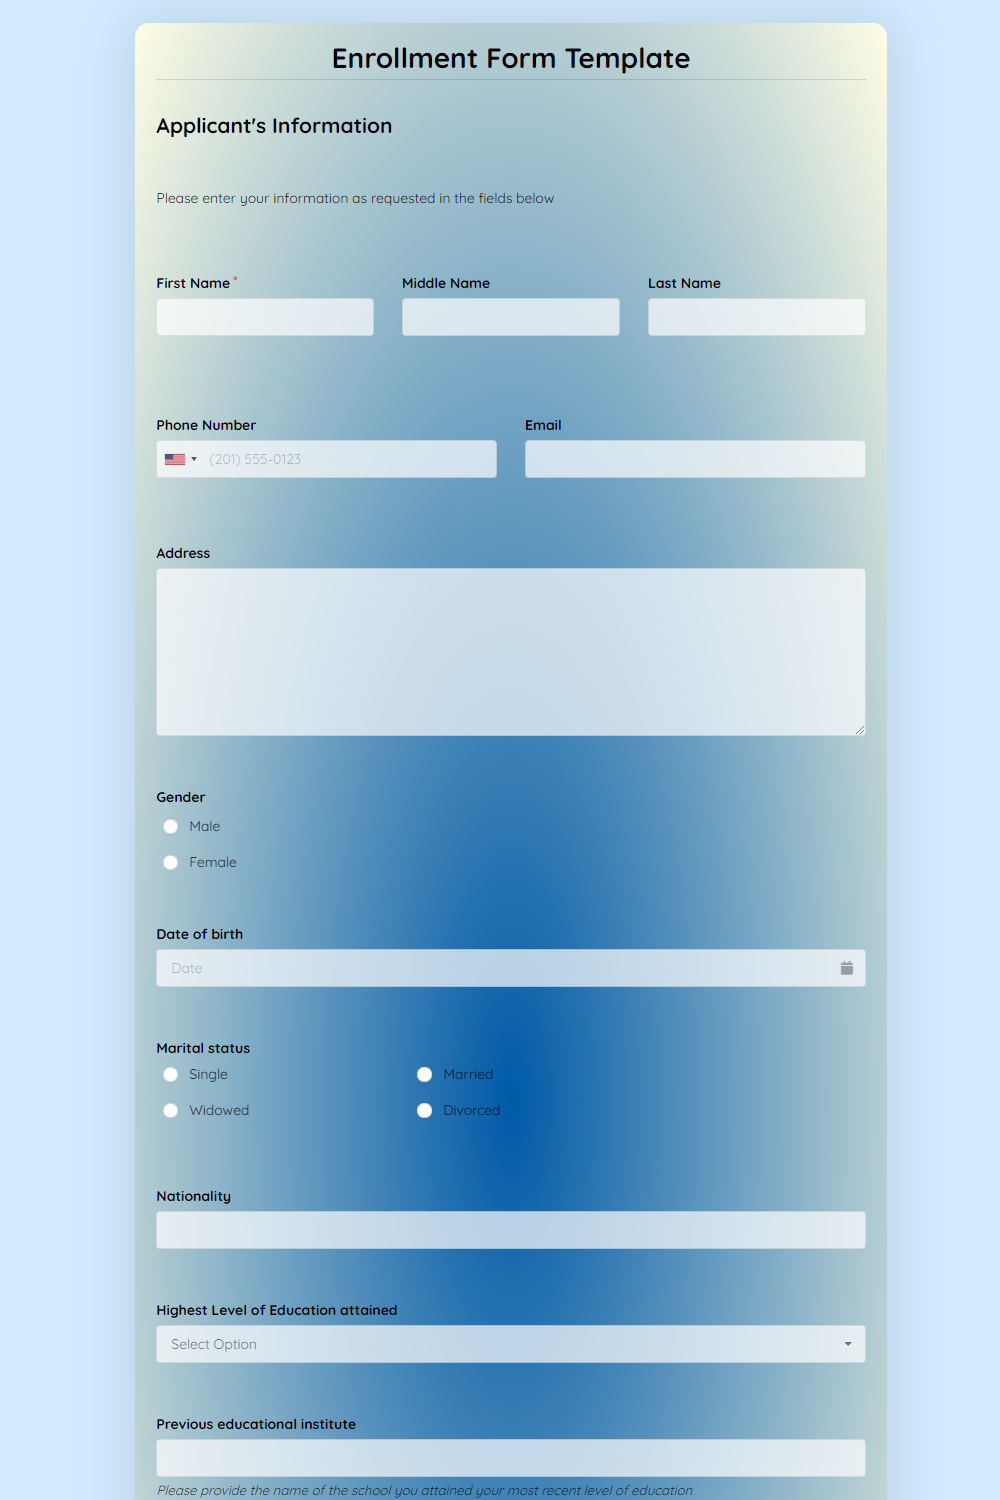 Enrollment Form Template template